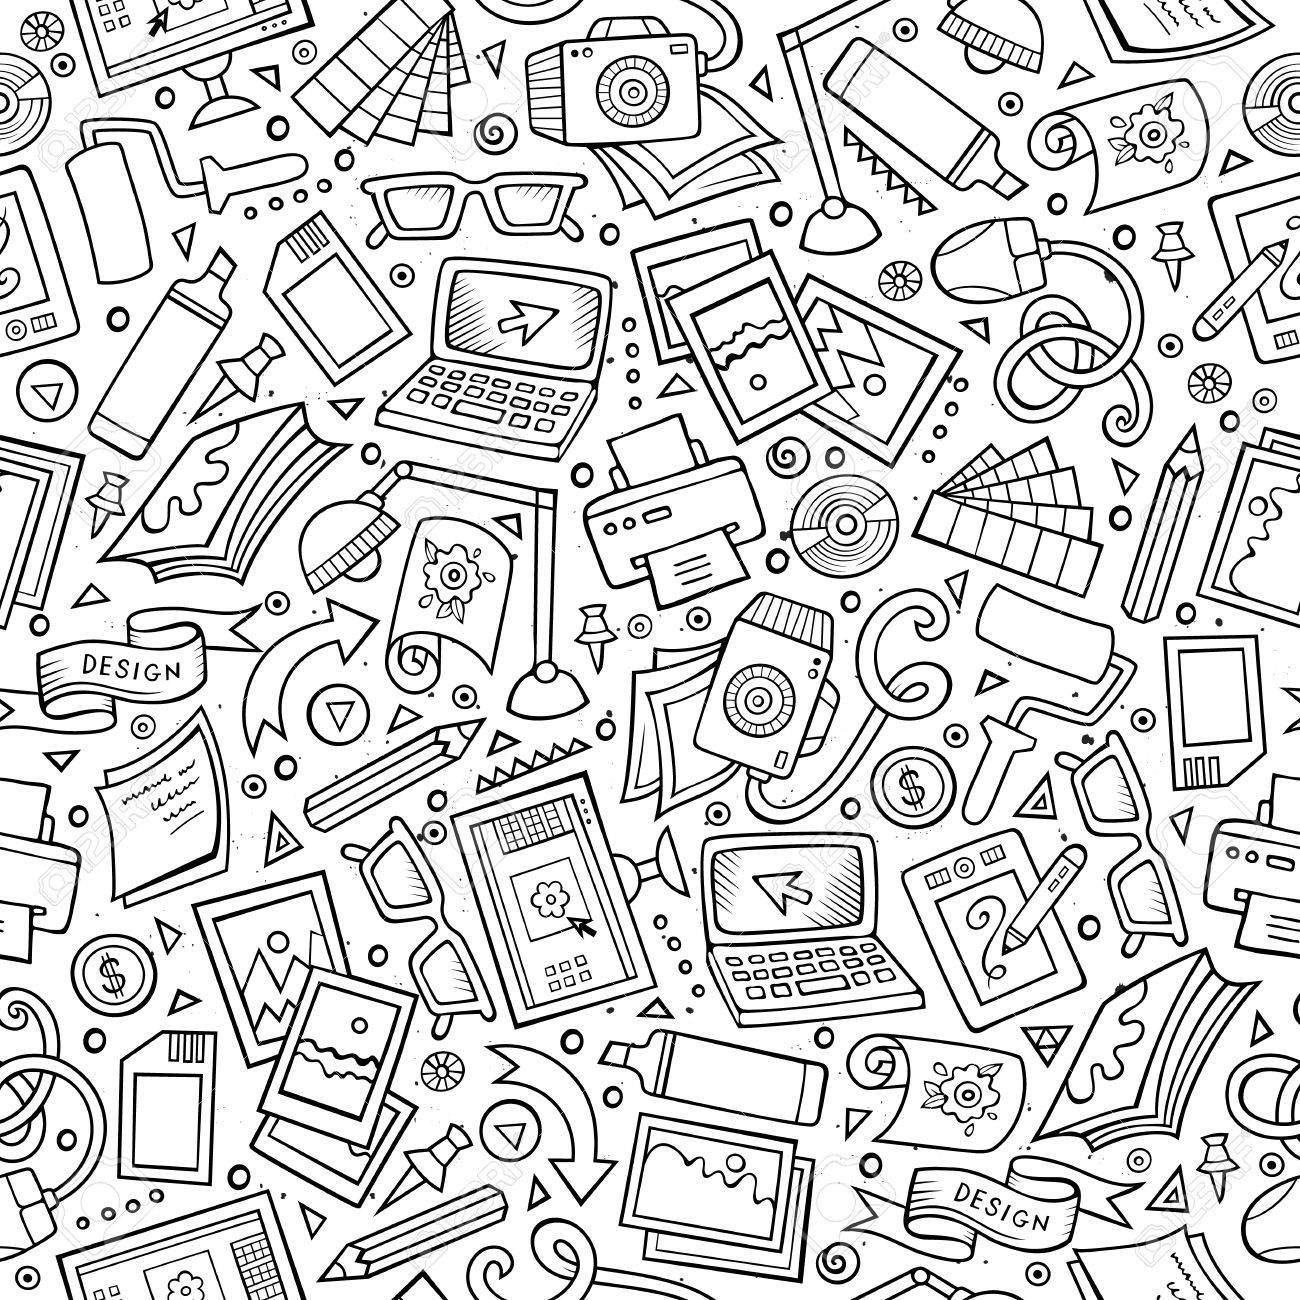 Cartoon cute hand drawn Design seamless pattern. Line art detailed, with lots of objects background. Endless funny vector illustration. Sketchy graphic designer backdrop. - 62017730